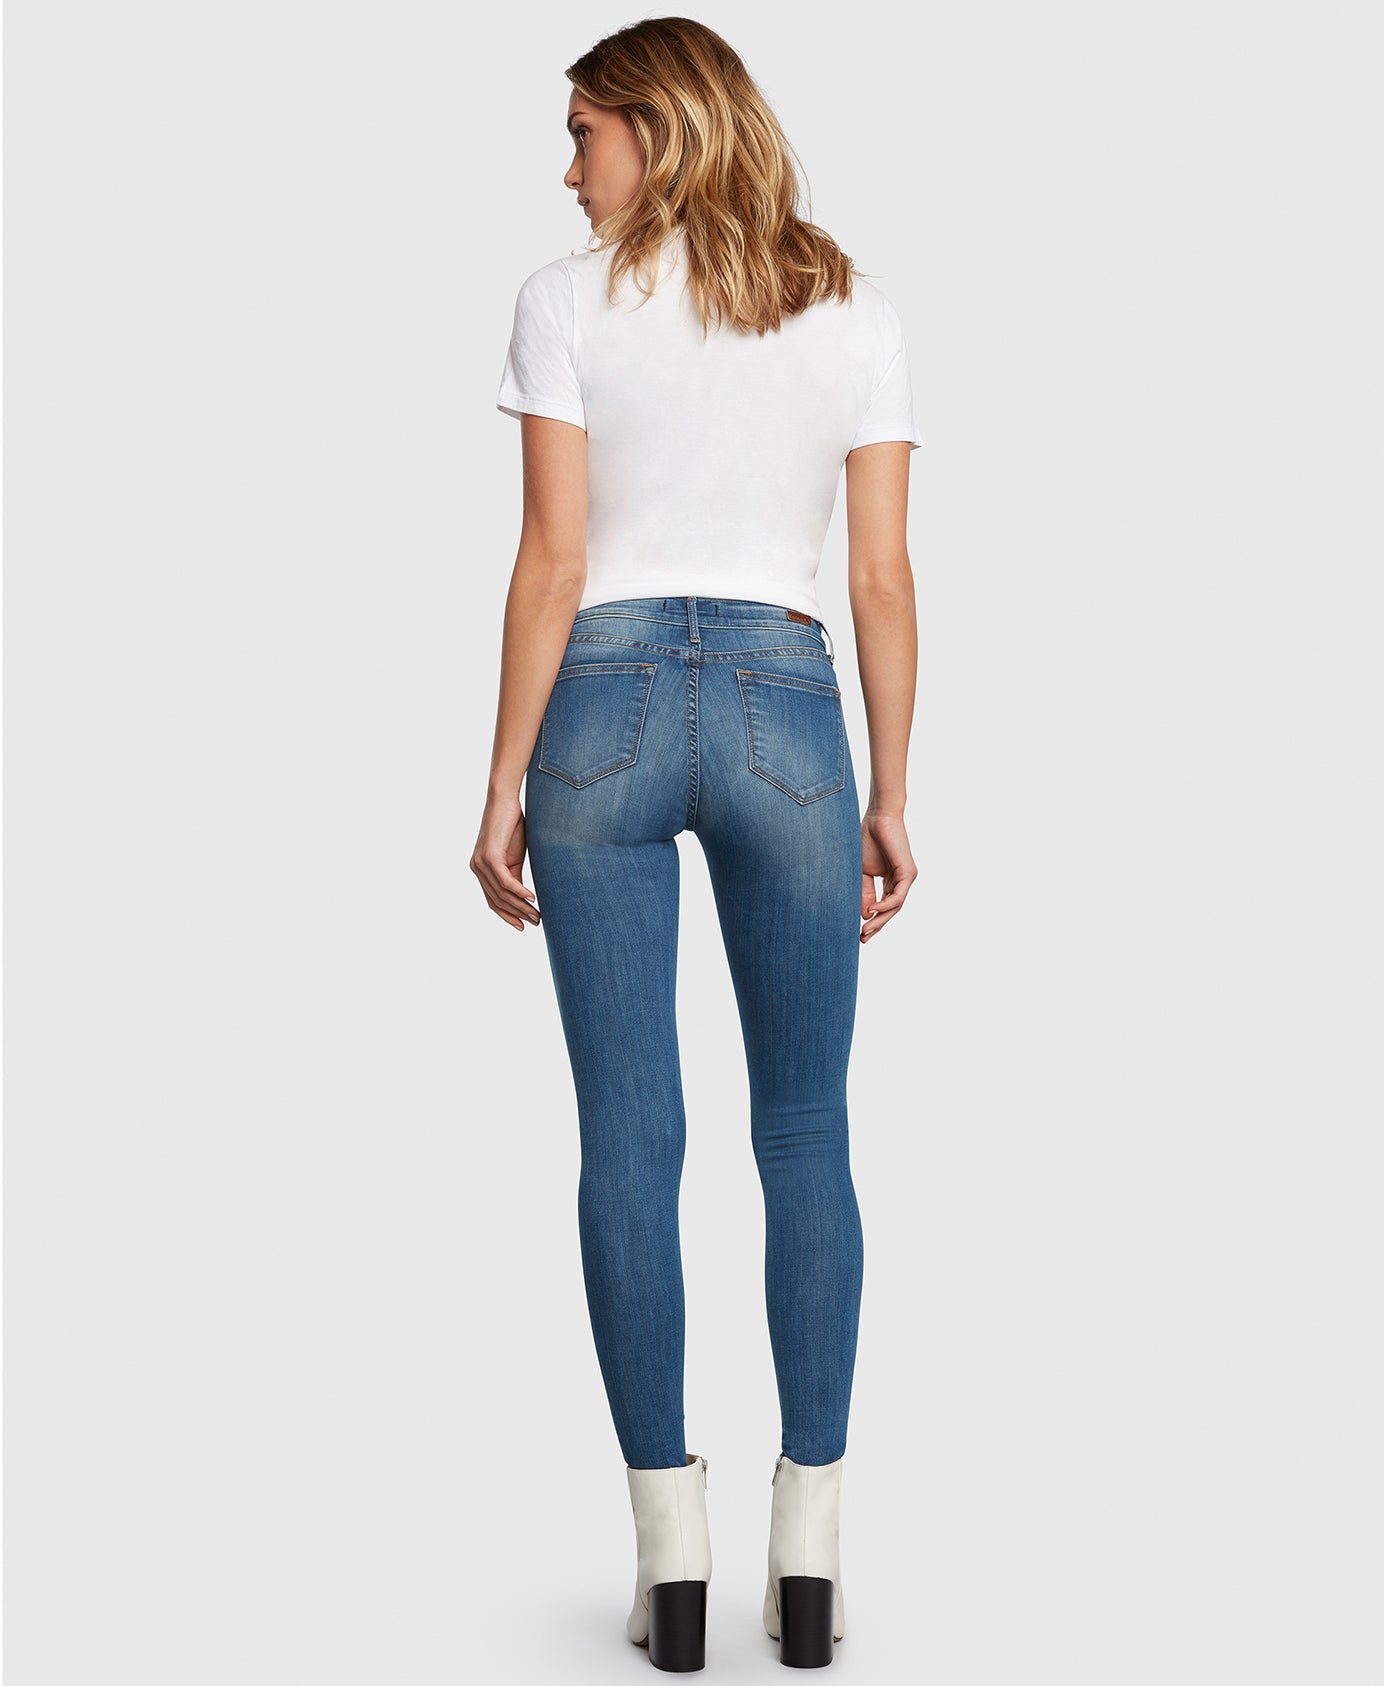 DREAMER in Escapade Principle Denim skinny jeans back